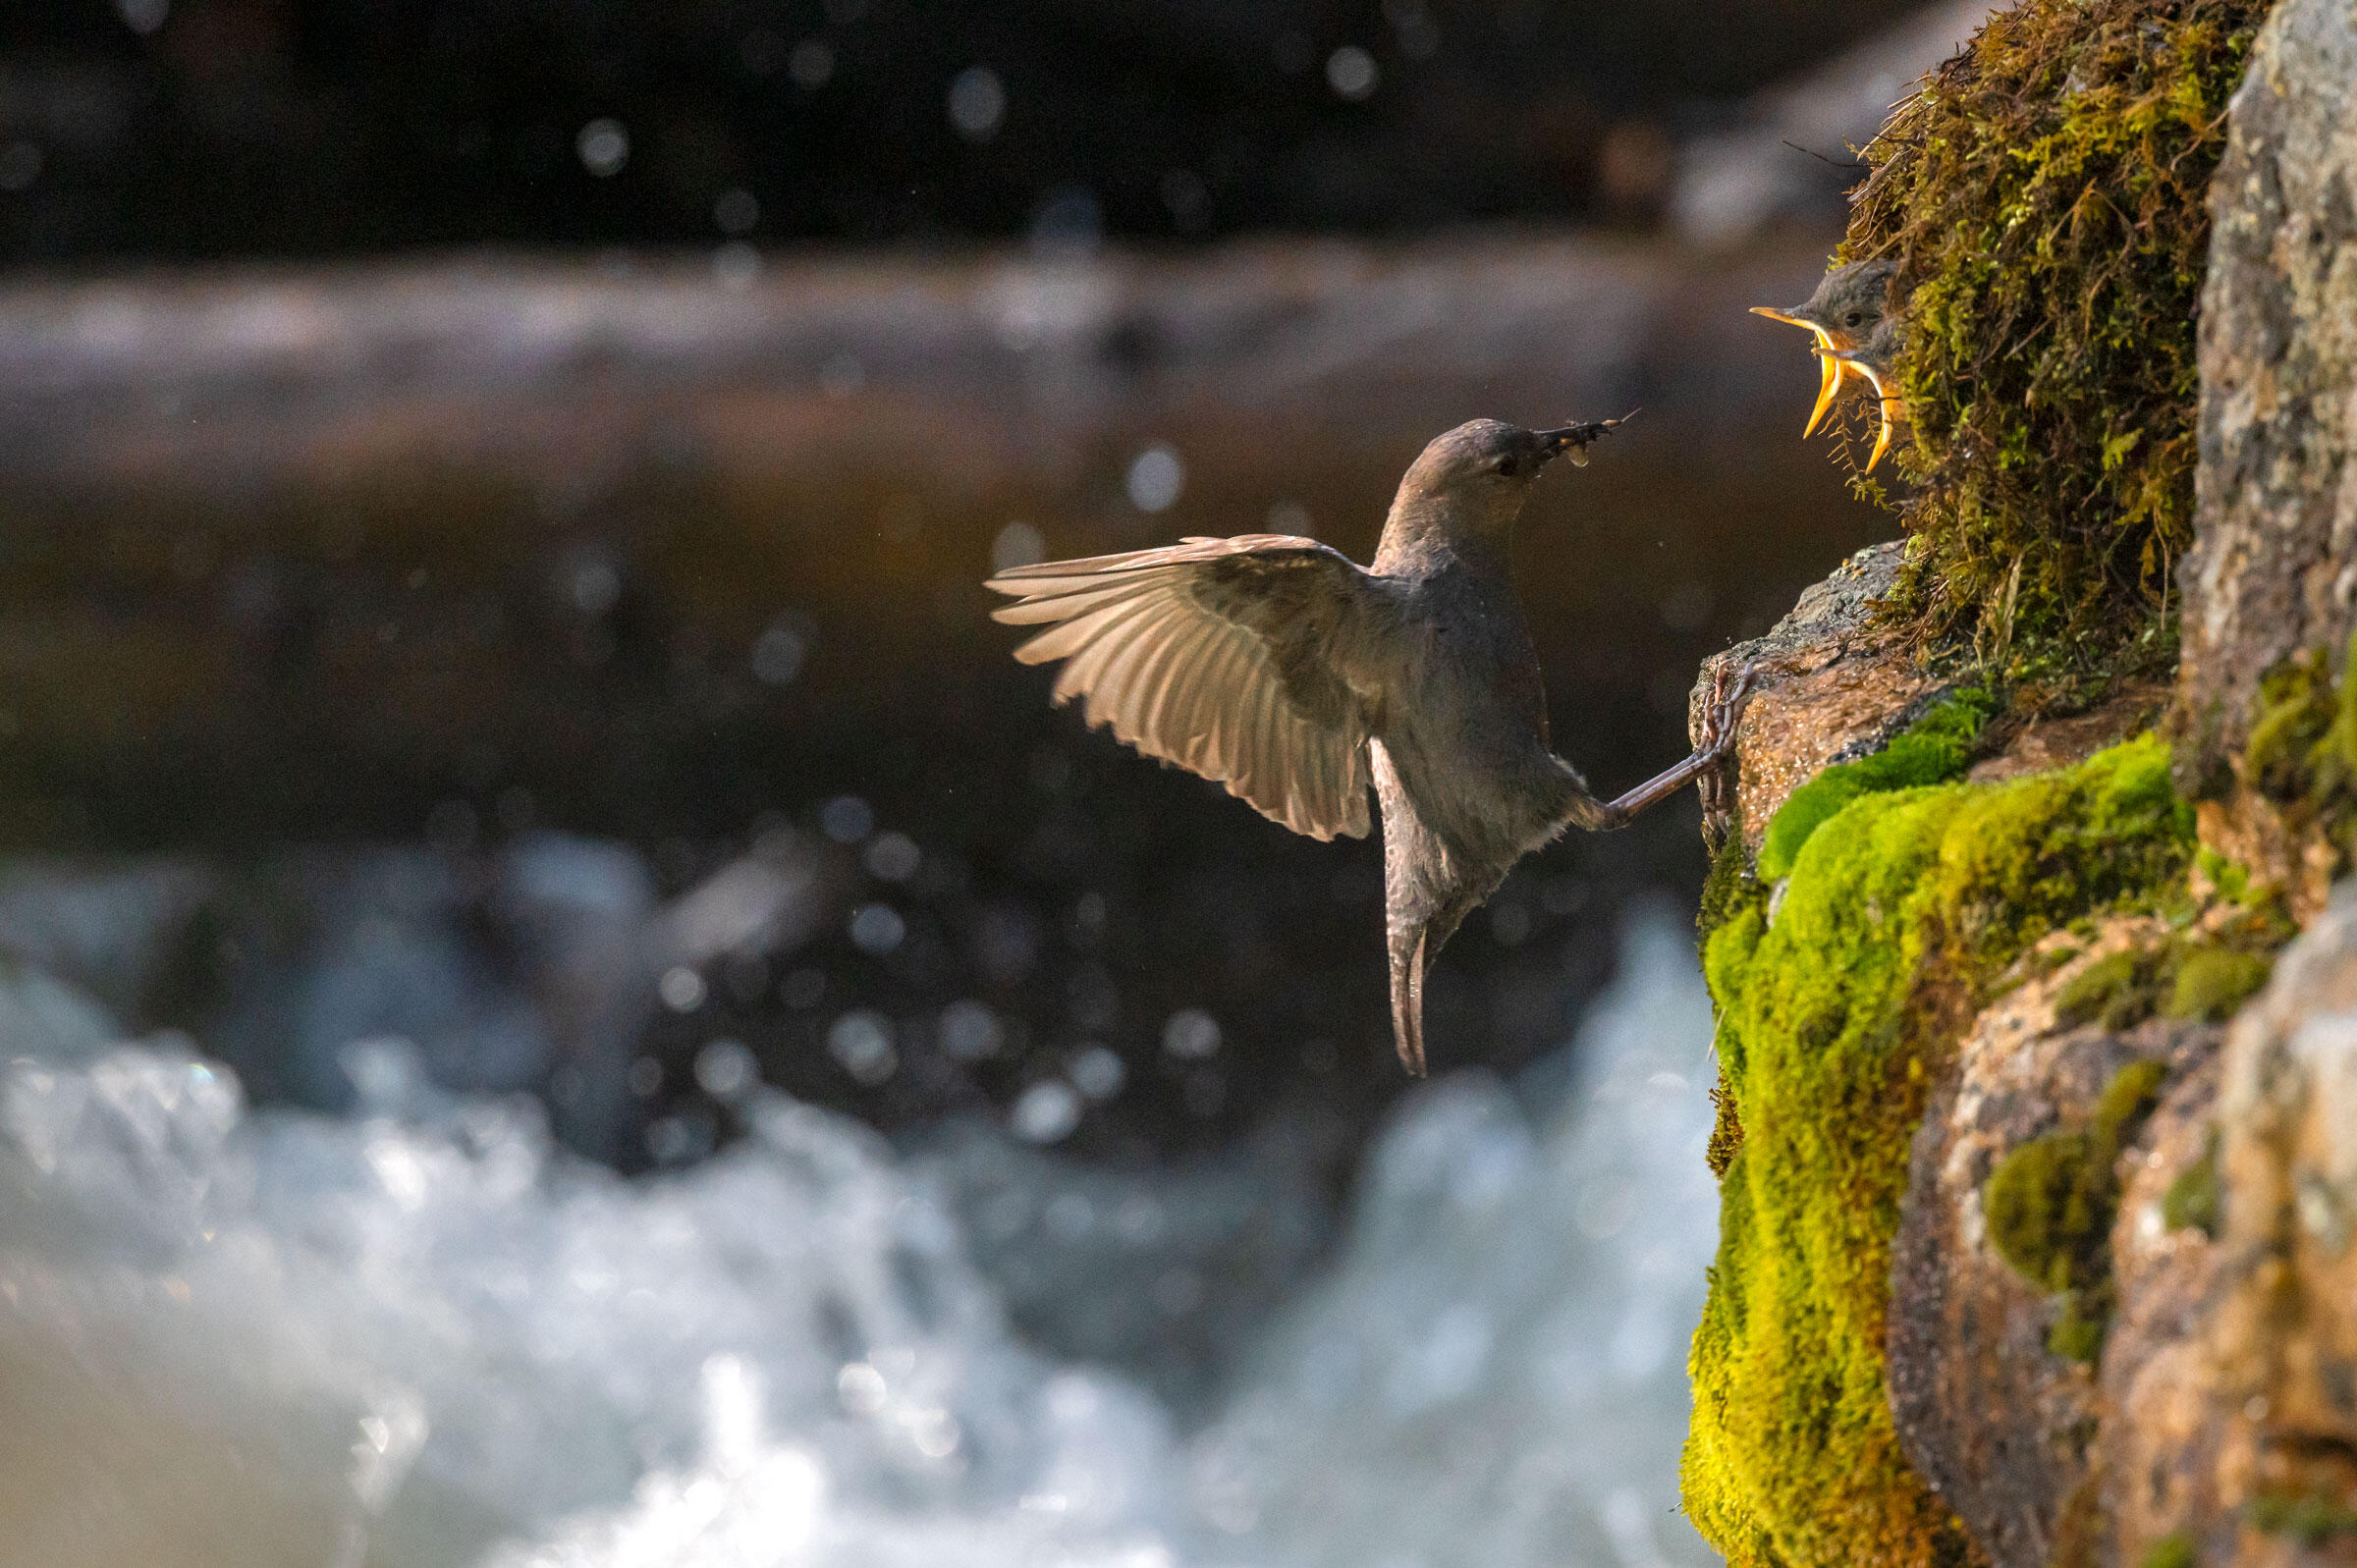 An American Dipper leaps from the rushing water below to feed its young in Rocky Mountain National Park. Michael Forsberg